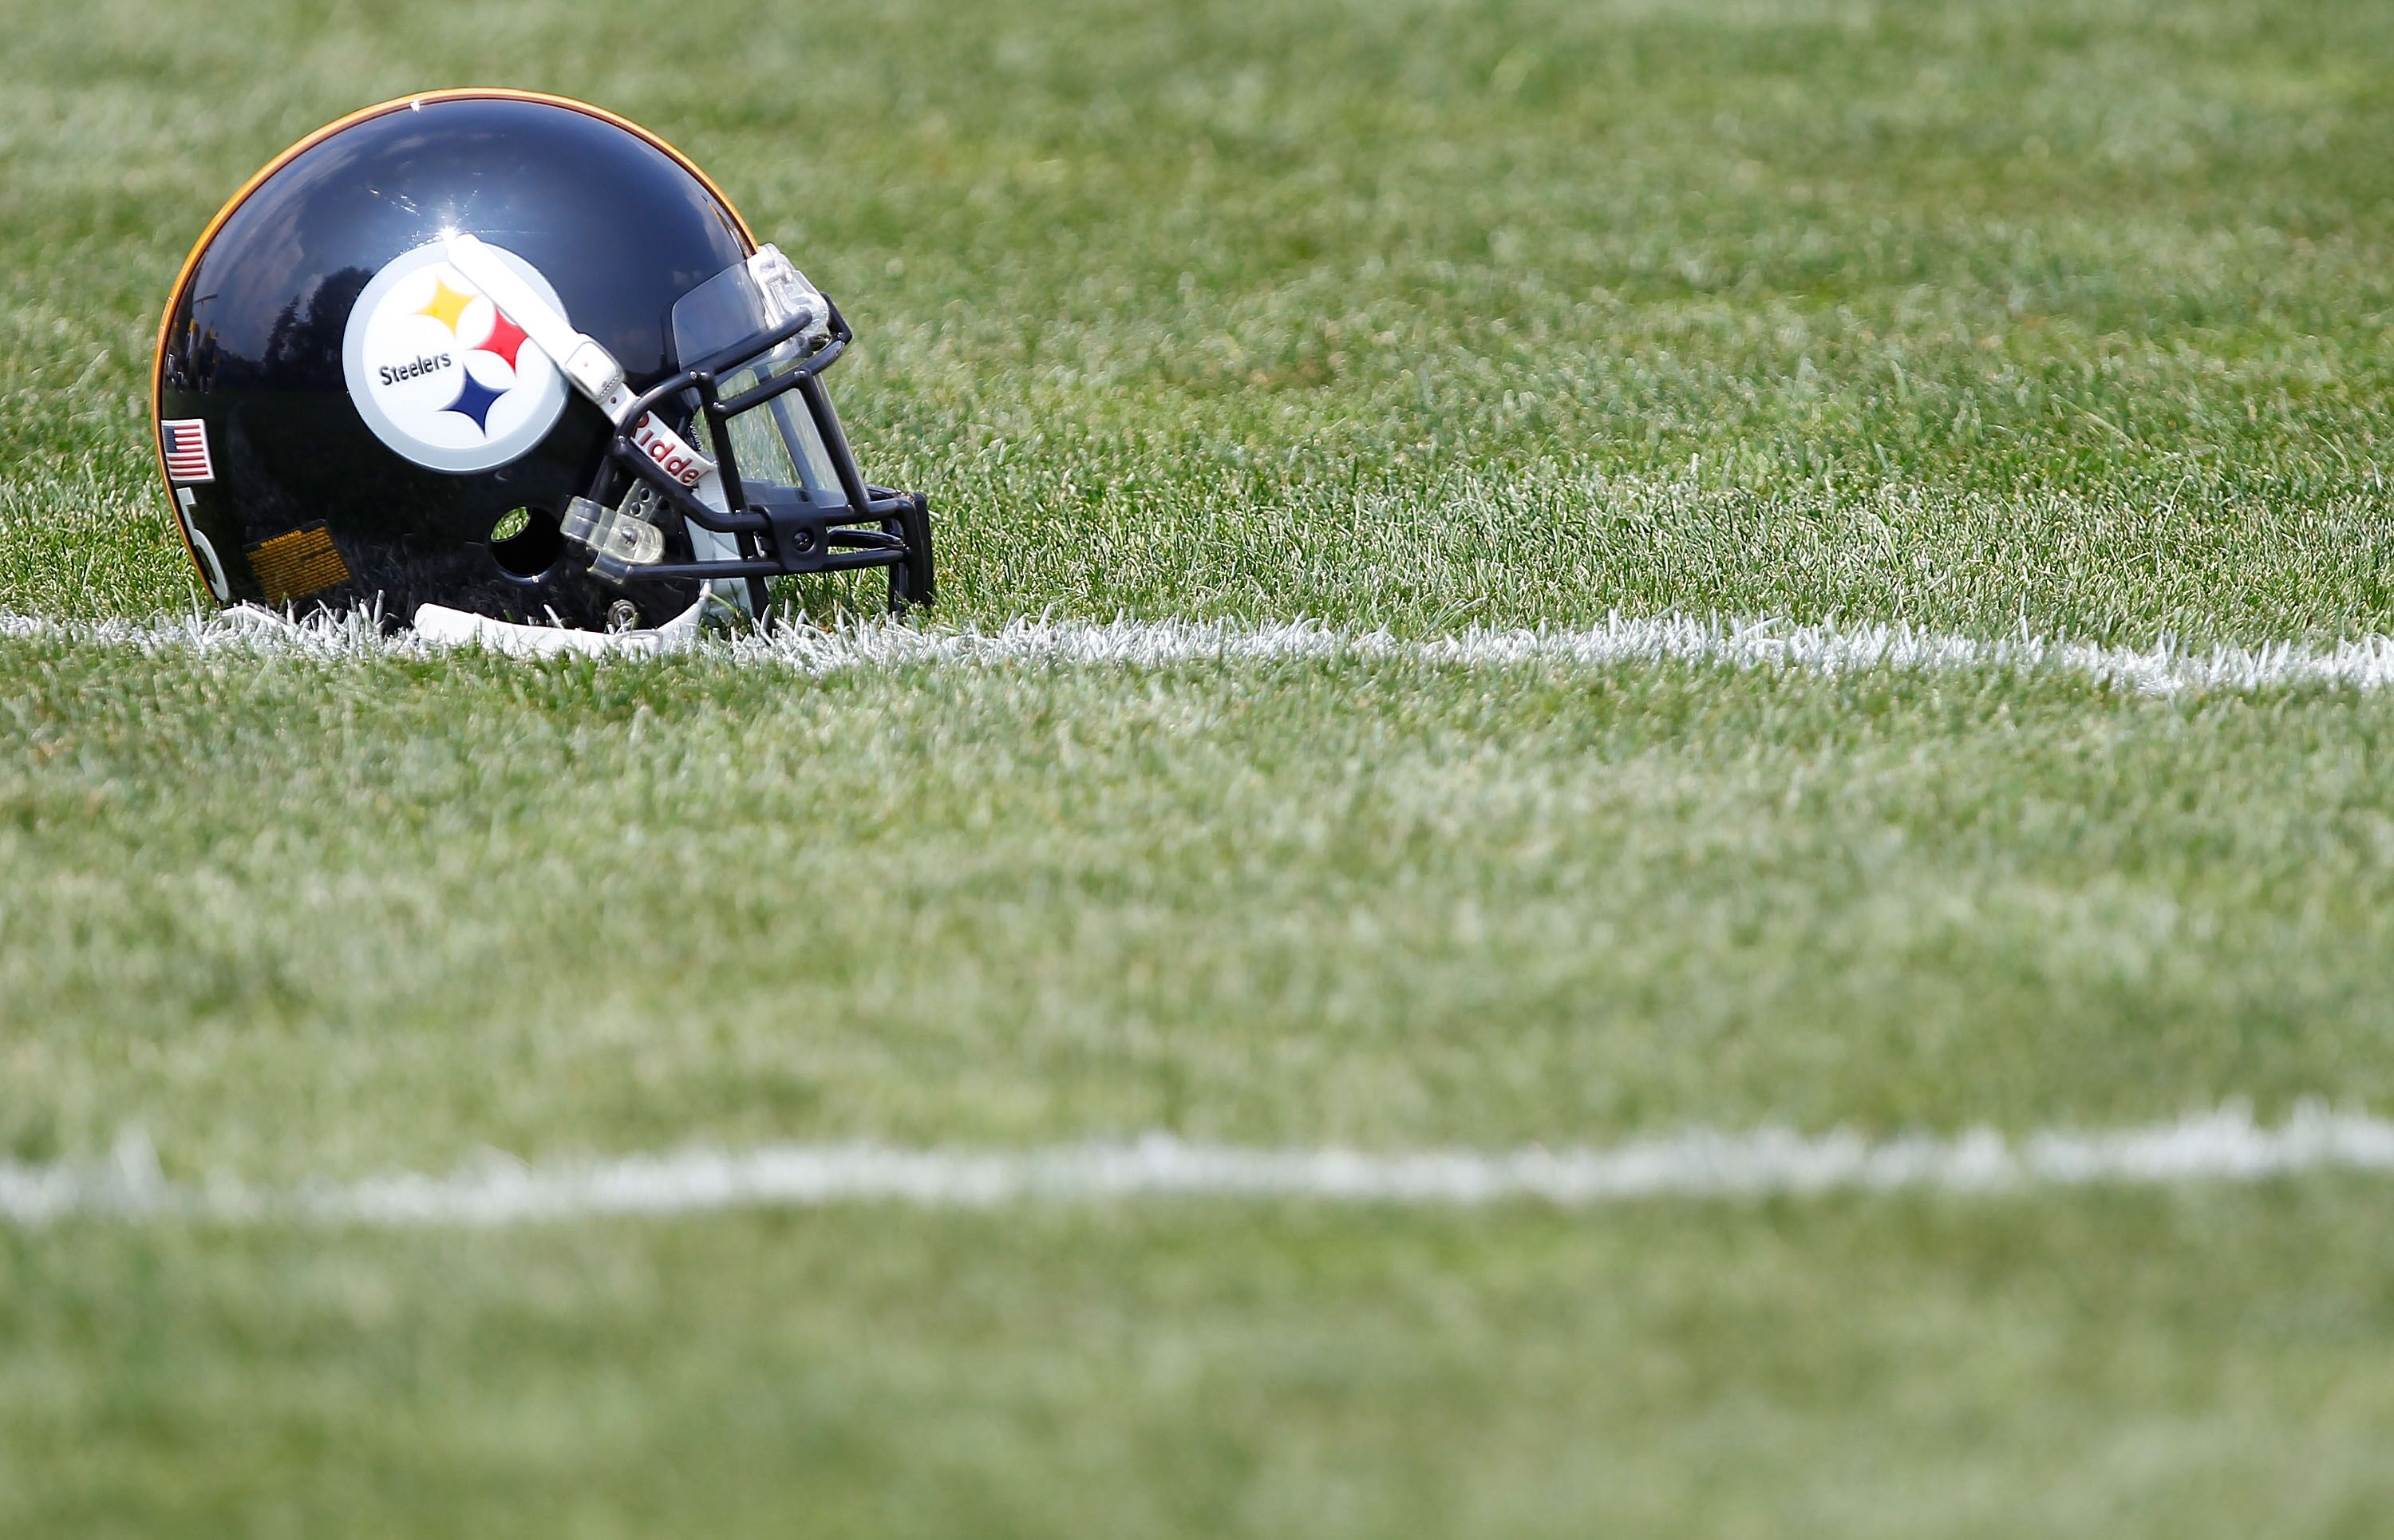 bef4d0f6d Pittsburgh Steelers rookie minicamp photo gallery - 5 10